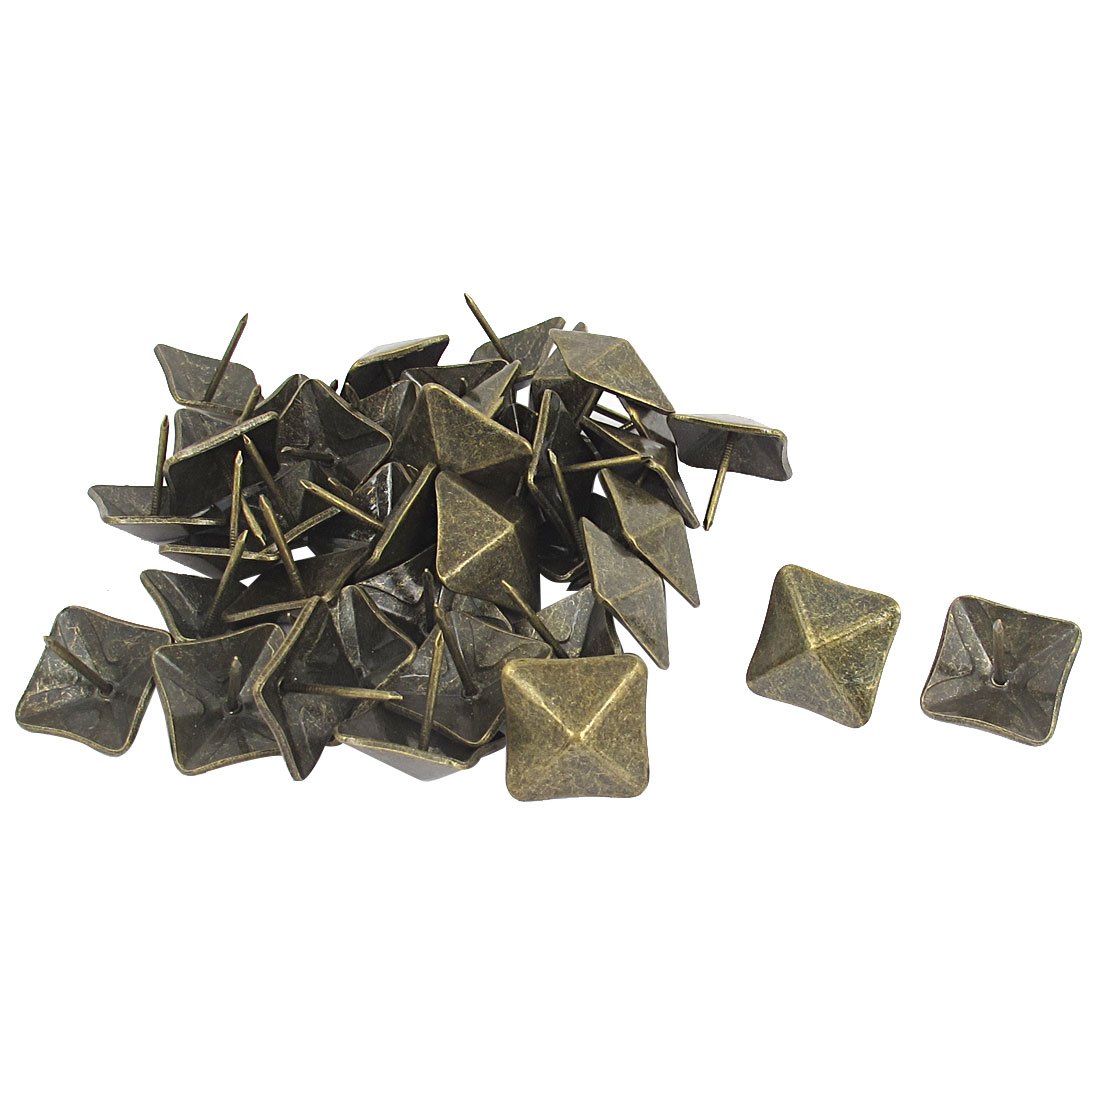 40 Pcs Antique Square Shaped Board Map Push Pins Thumbtacks w Steel Point Bronze Tone